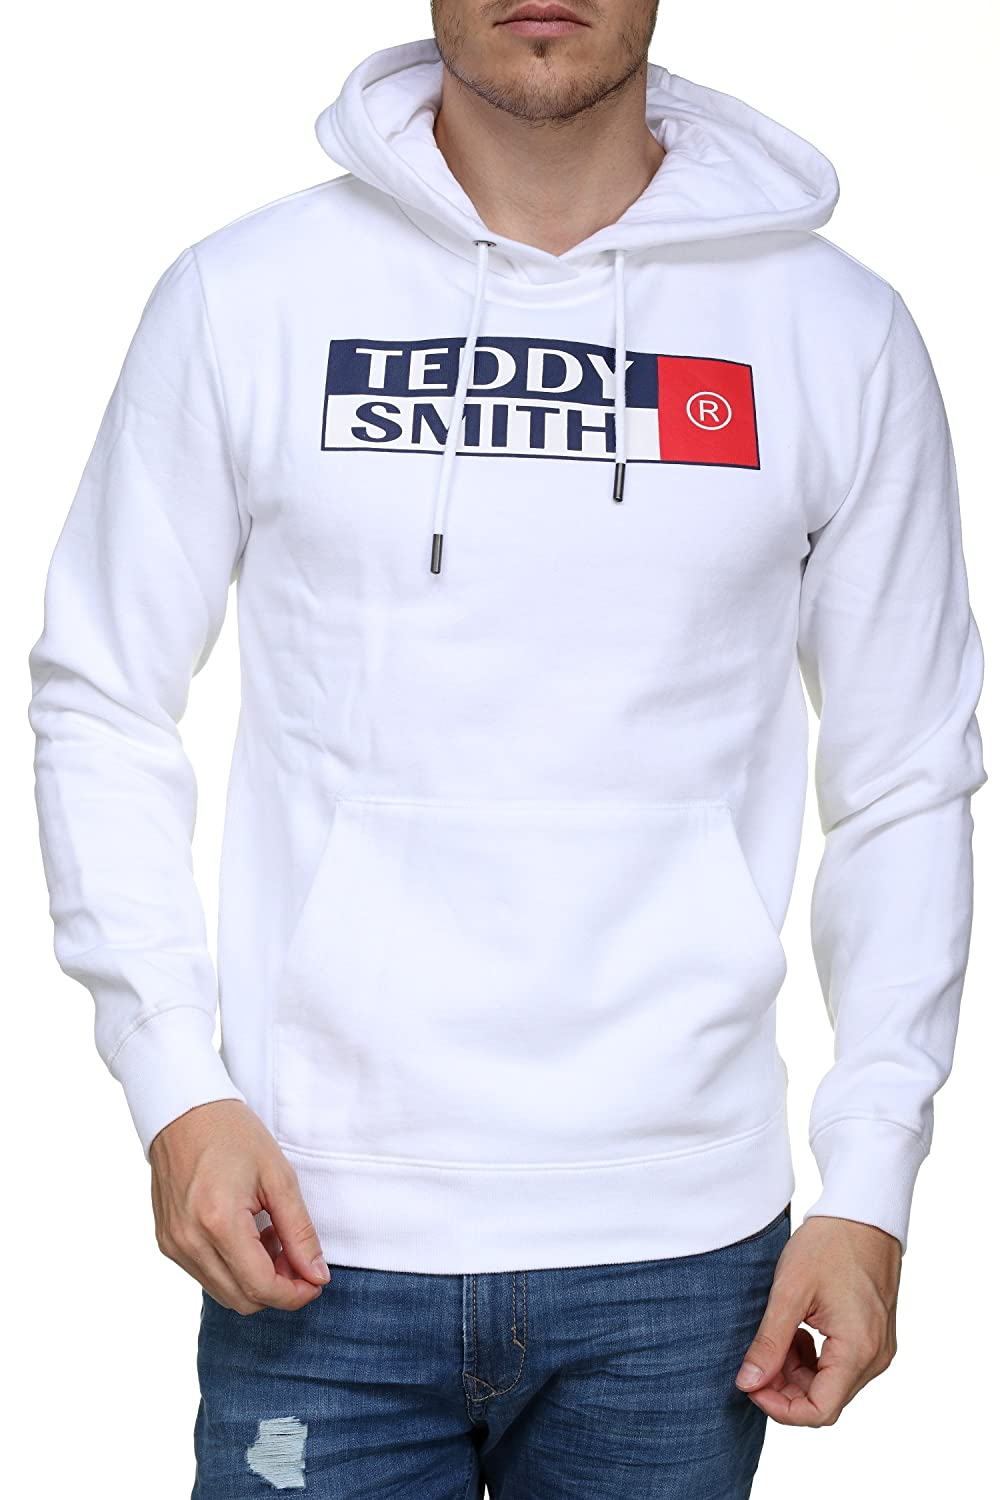 Teddy Smith Herren Sweatshirt Setik